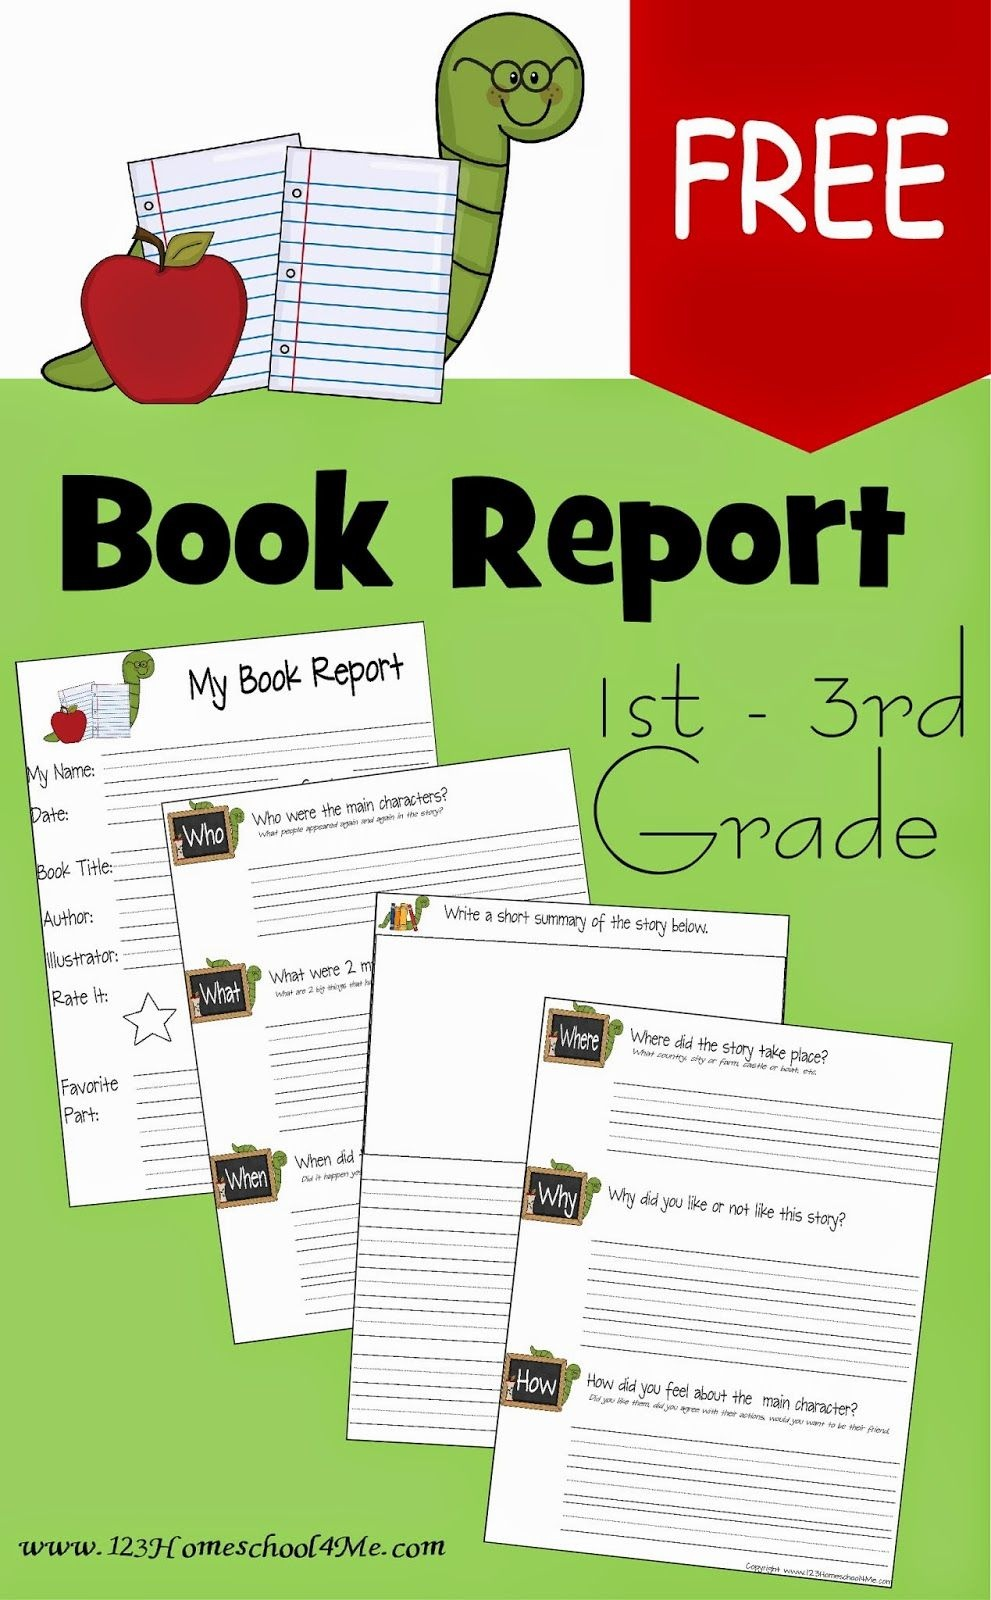 Free Book Report Template | Play Activities For Kids | 1St Grade - Free Printable Book Report Forms